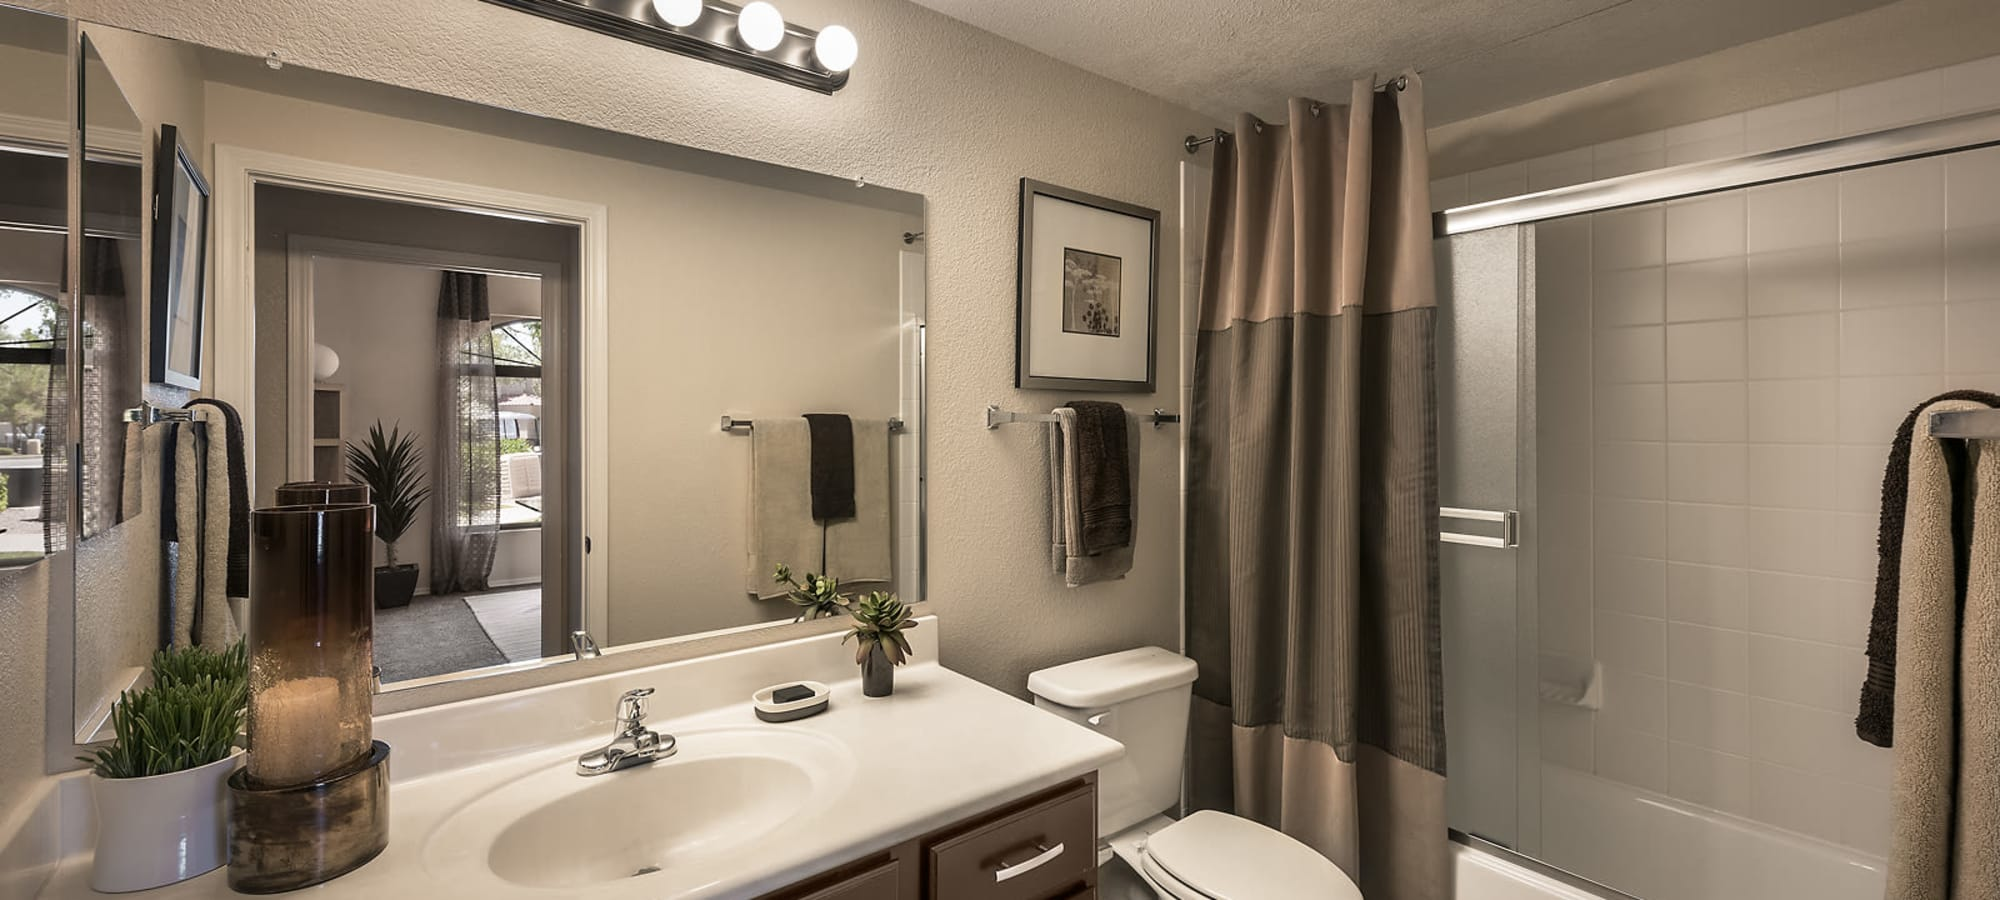 Luxury bathroom at San Cervantes in Chandler, Arizona